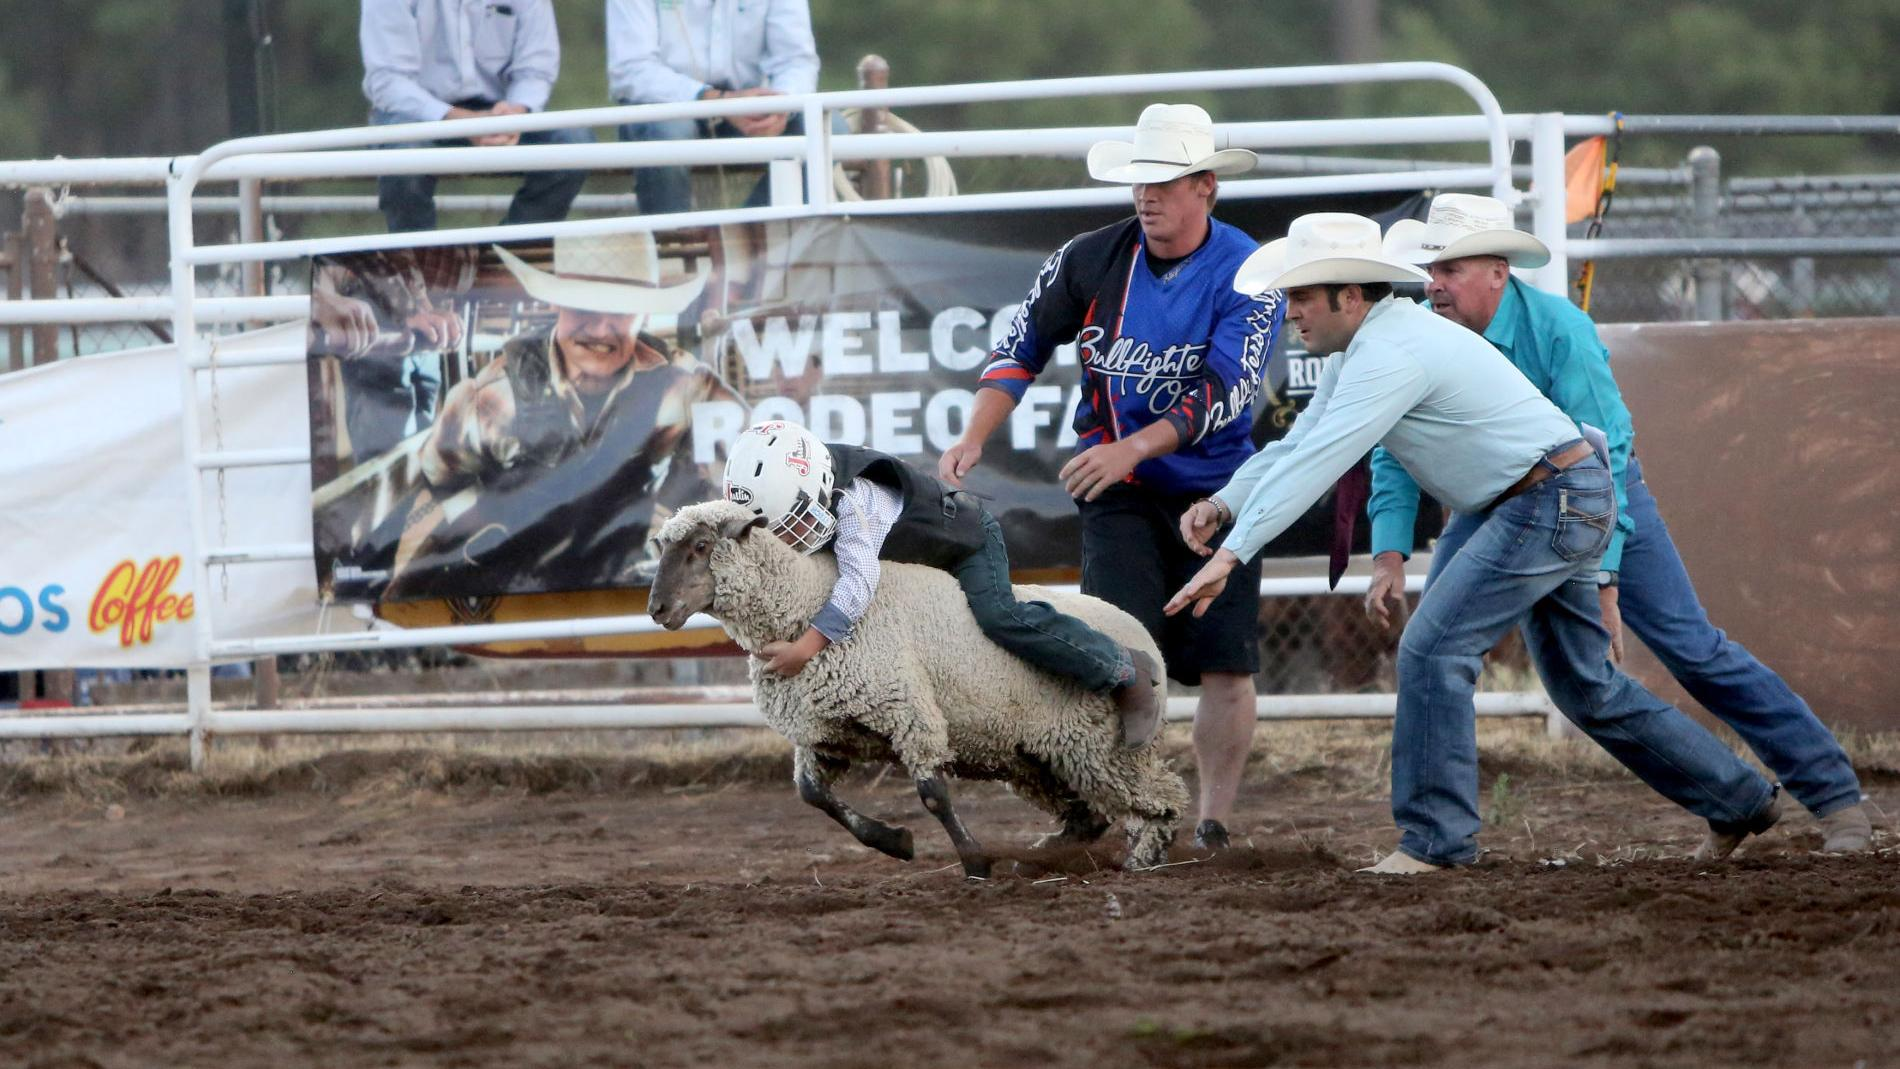 Mutton to worry about, say kids at Flagstaff Pro Rodeo